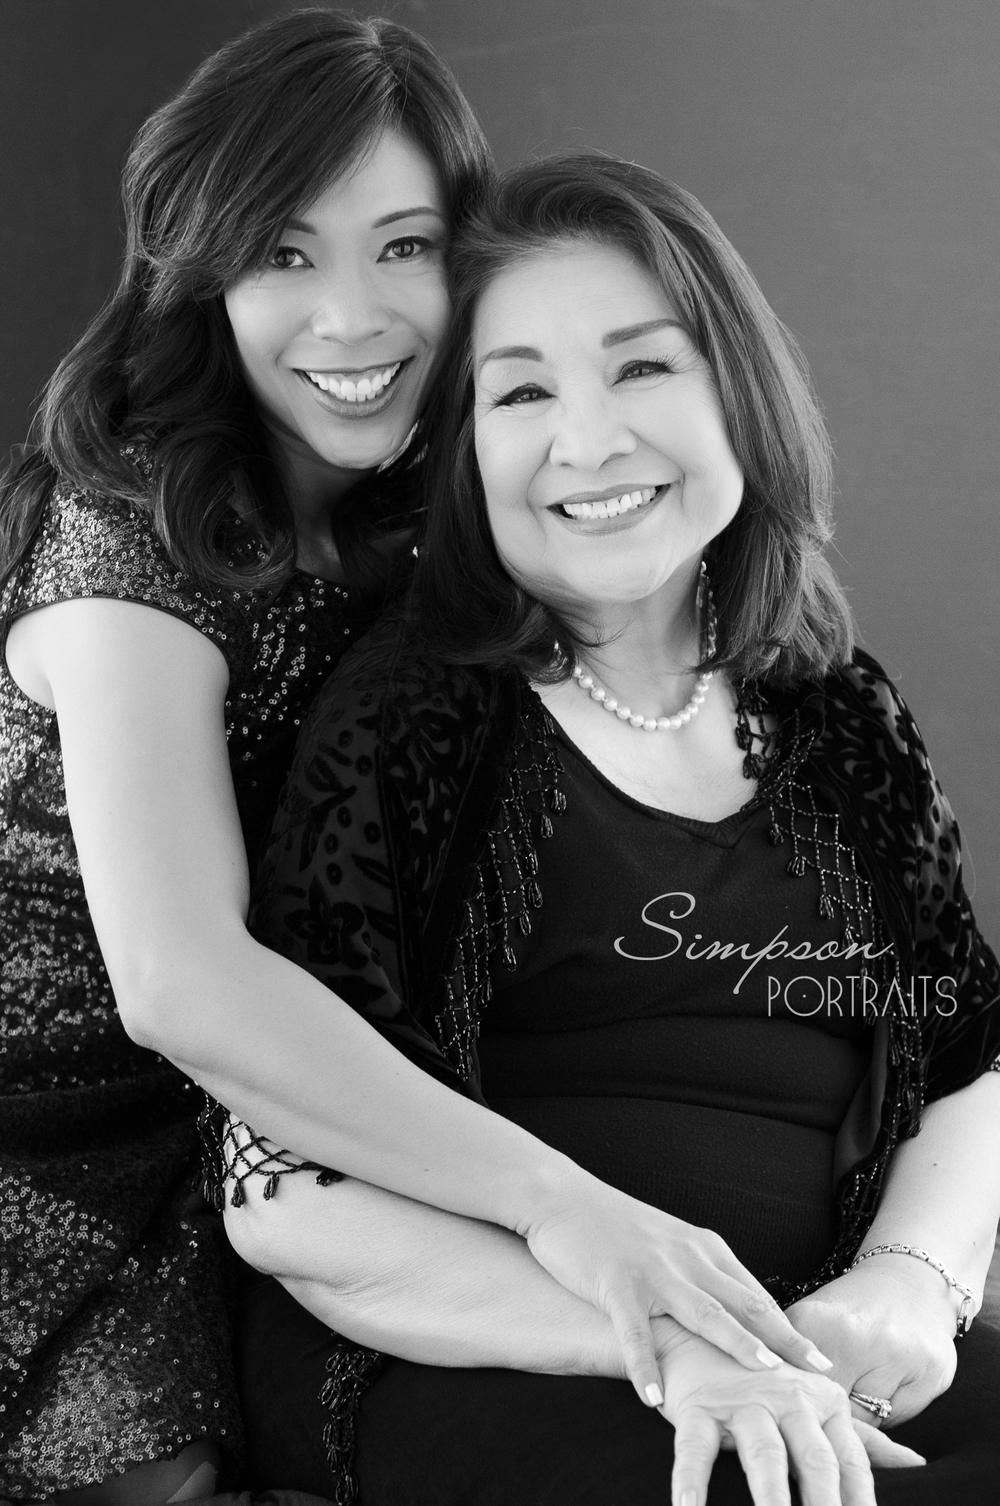 Los_Angeles_Mother_Daughter_Portrait_Photographer-2.jpg